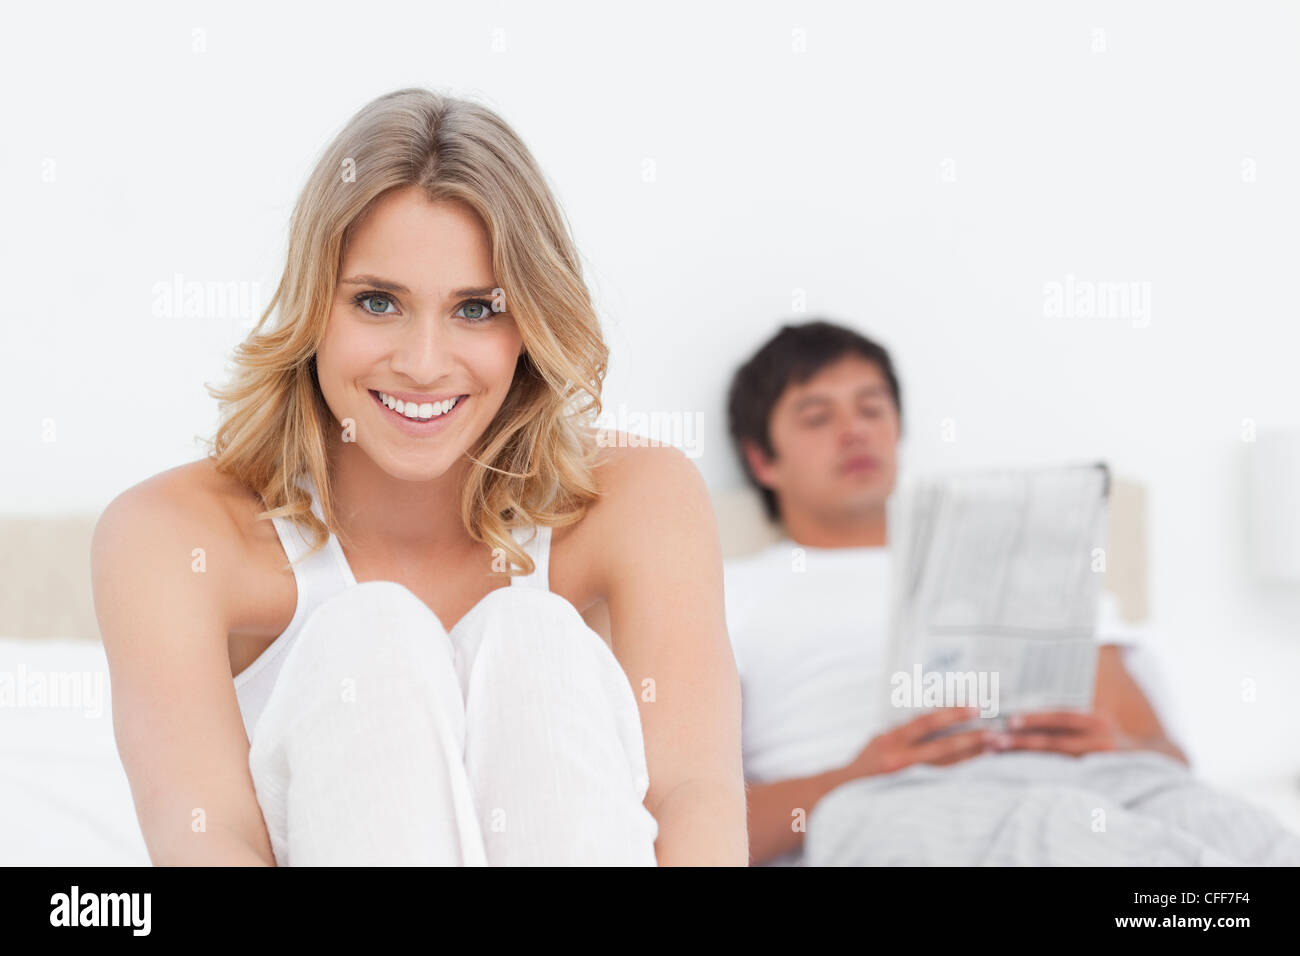 Woman at the bottom of the bed smiling as the man reads at the top of the bed - Stock Image